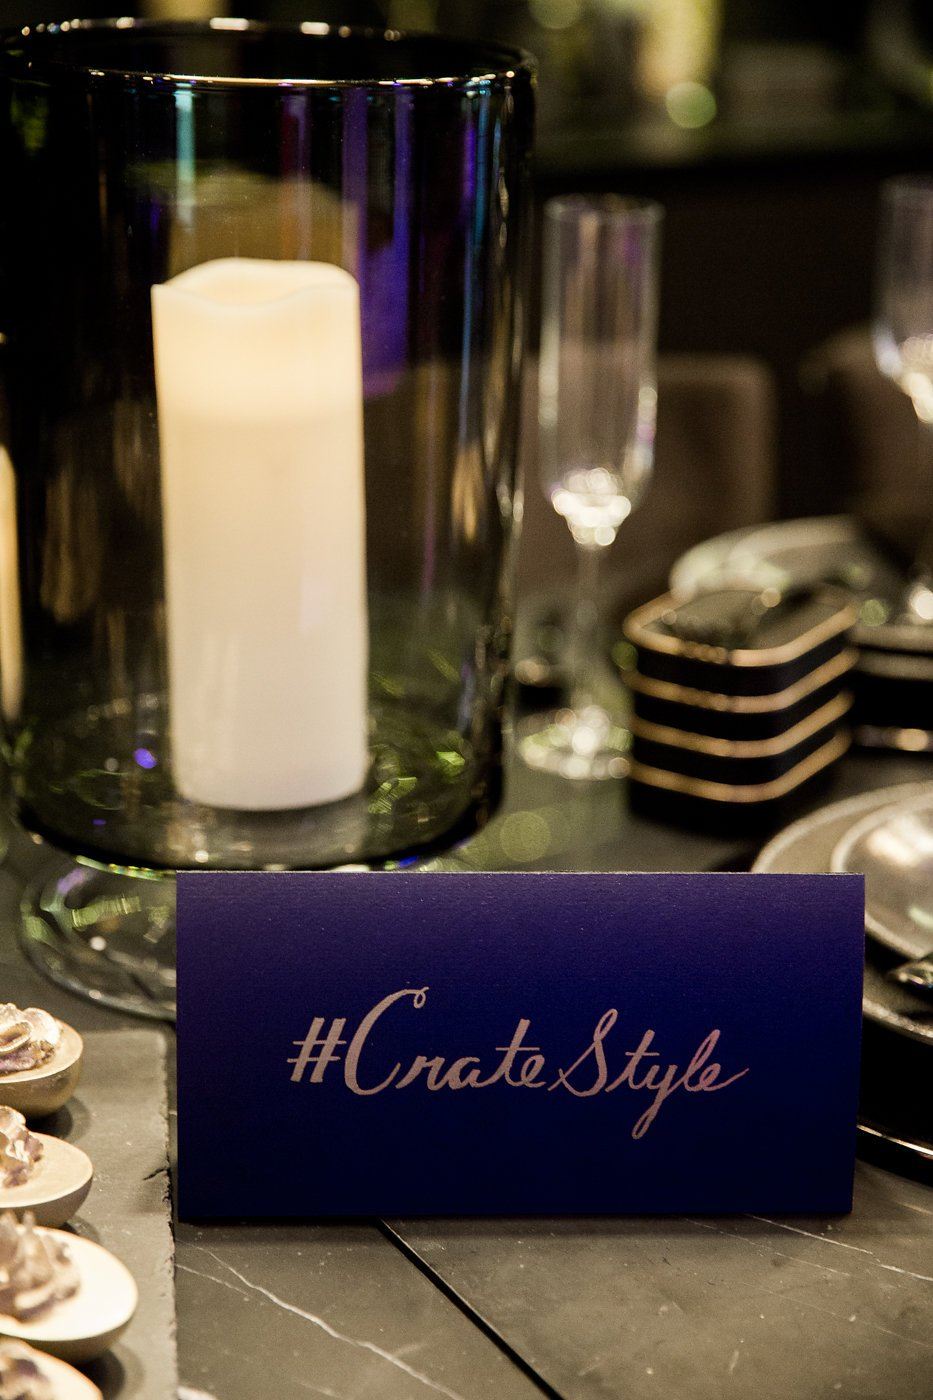 #CrateStyle card on table for spectators to use on social media